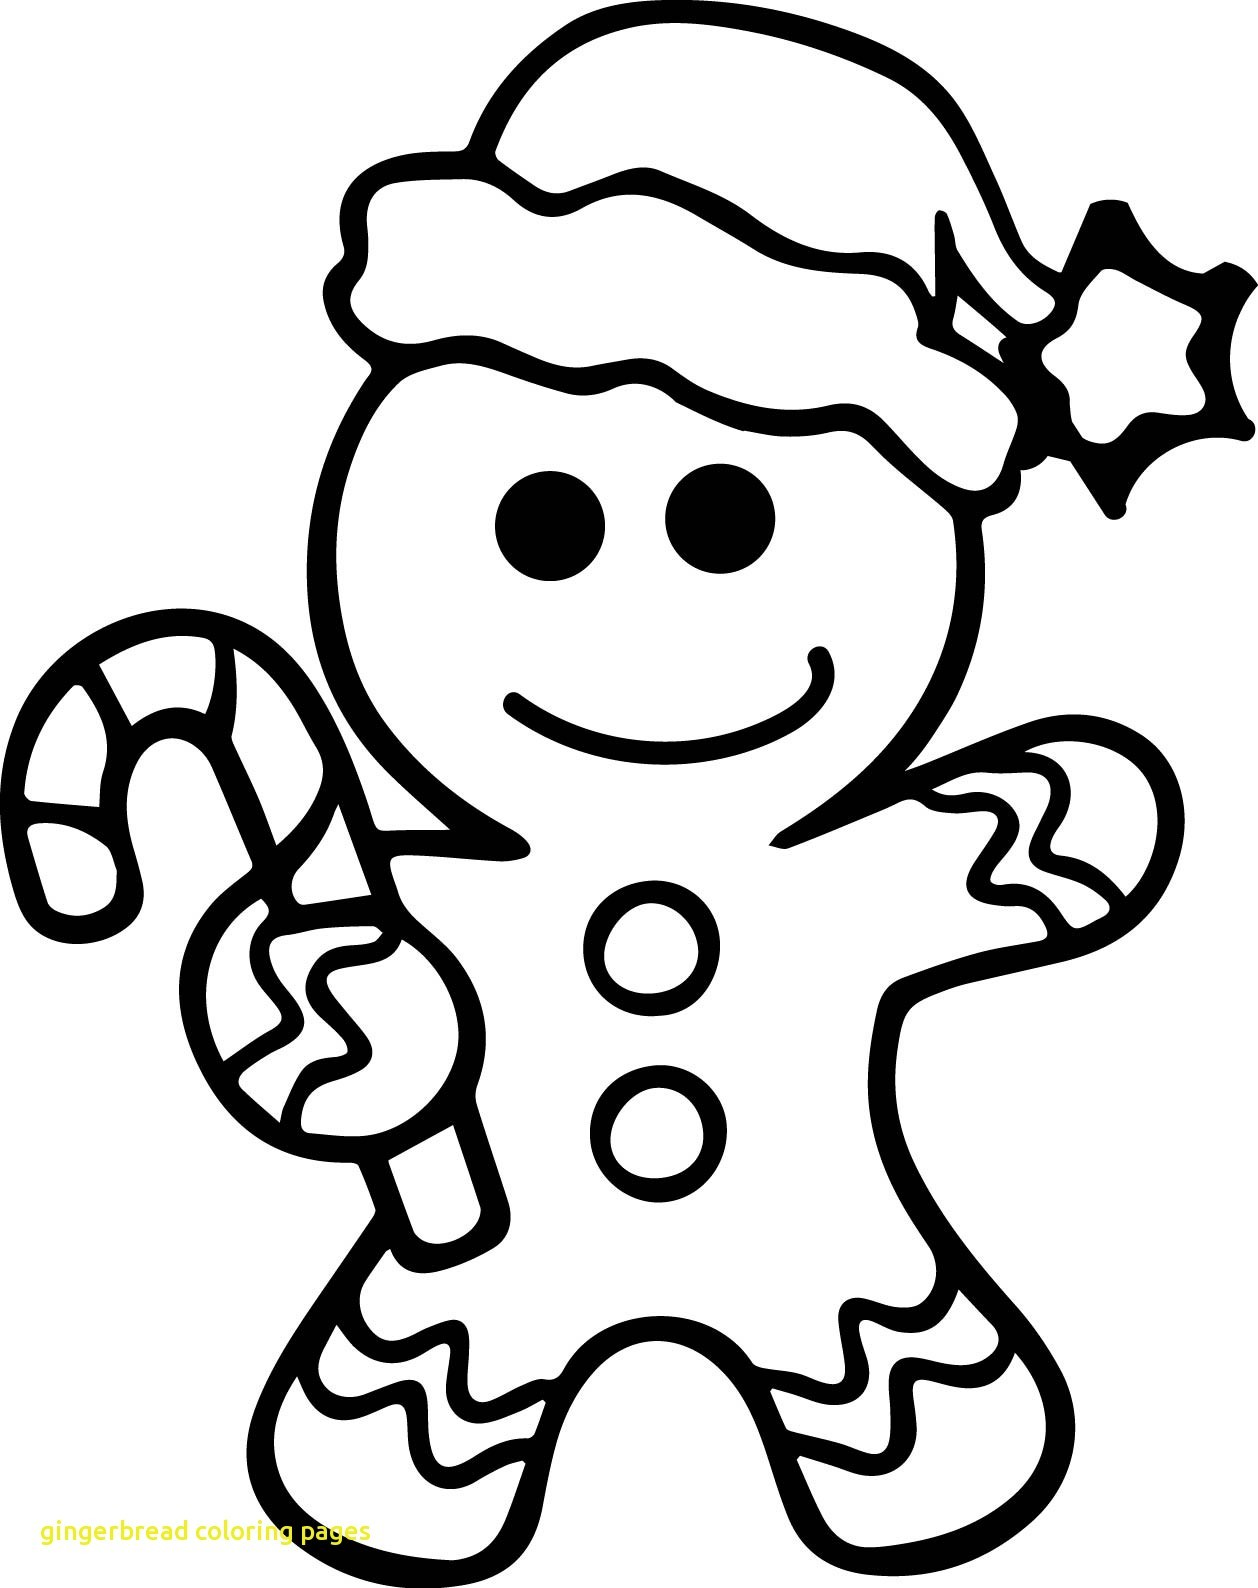 Gingerbread House Coloring Pages At Getcolorings